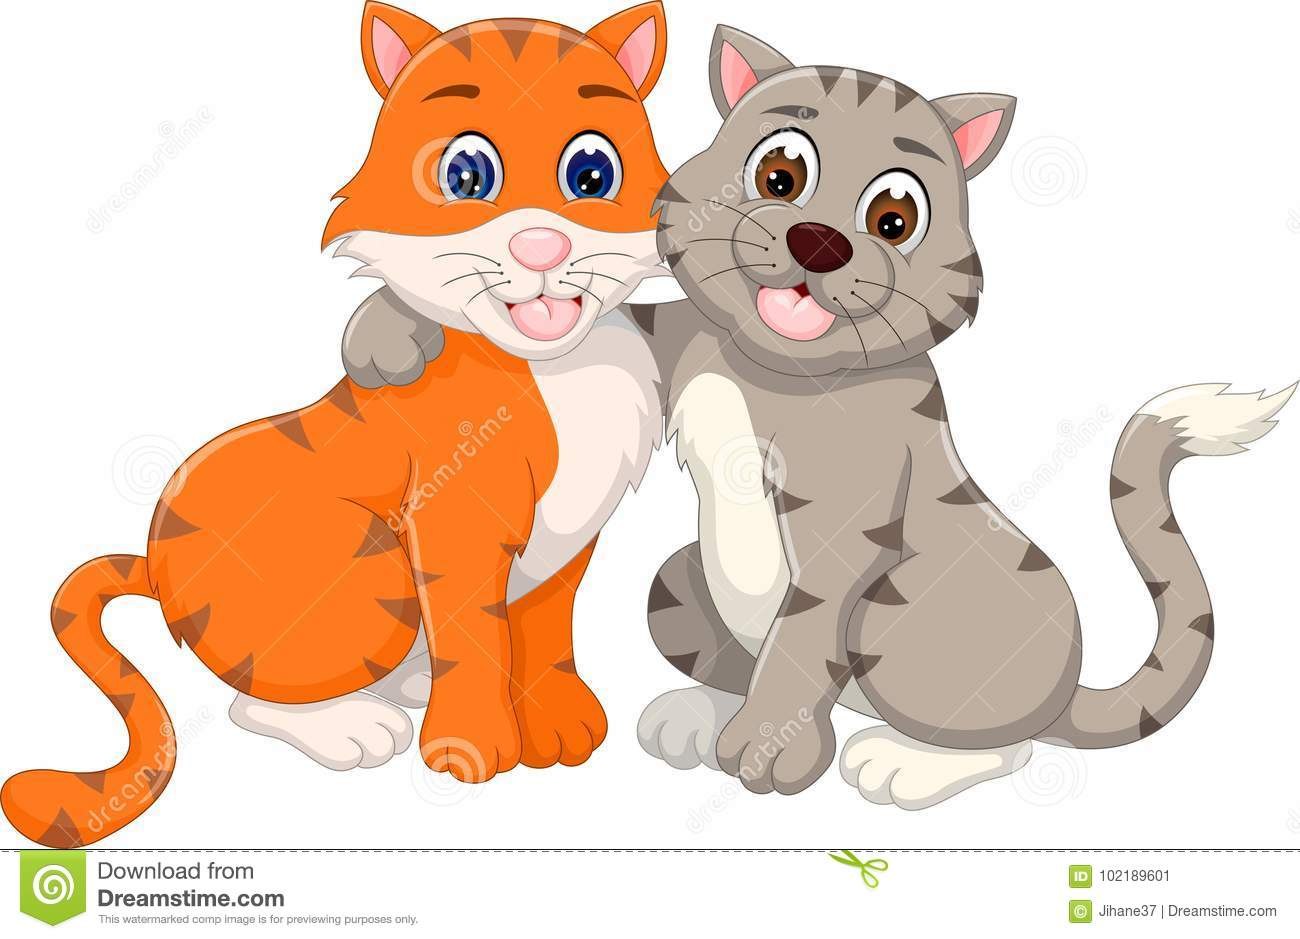 fcb41f79ab4 Sweet Cat Couple Cartoon Hugging With Smile Stock Illustration ...